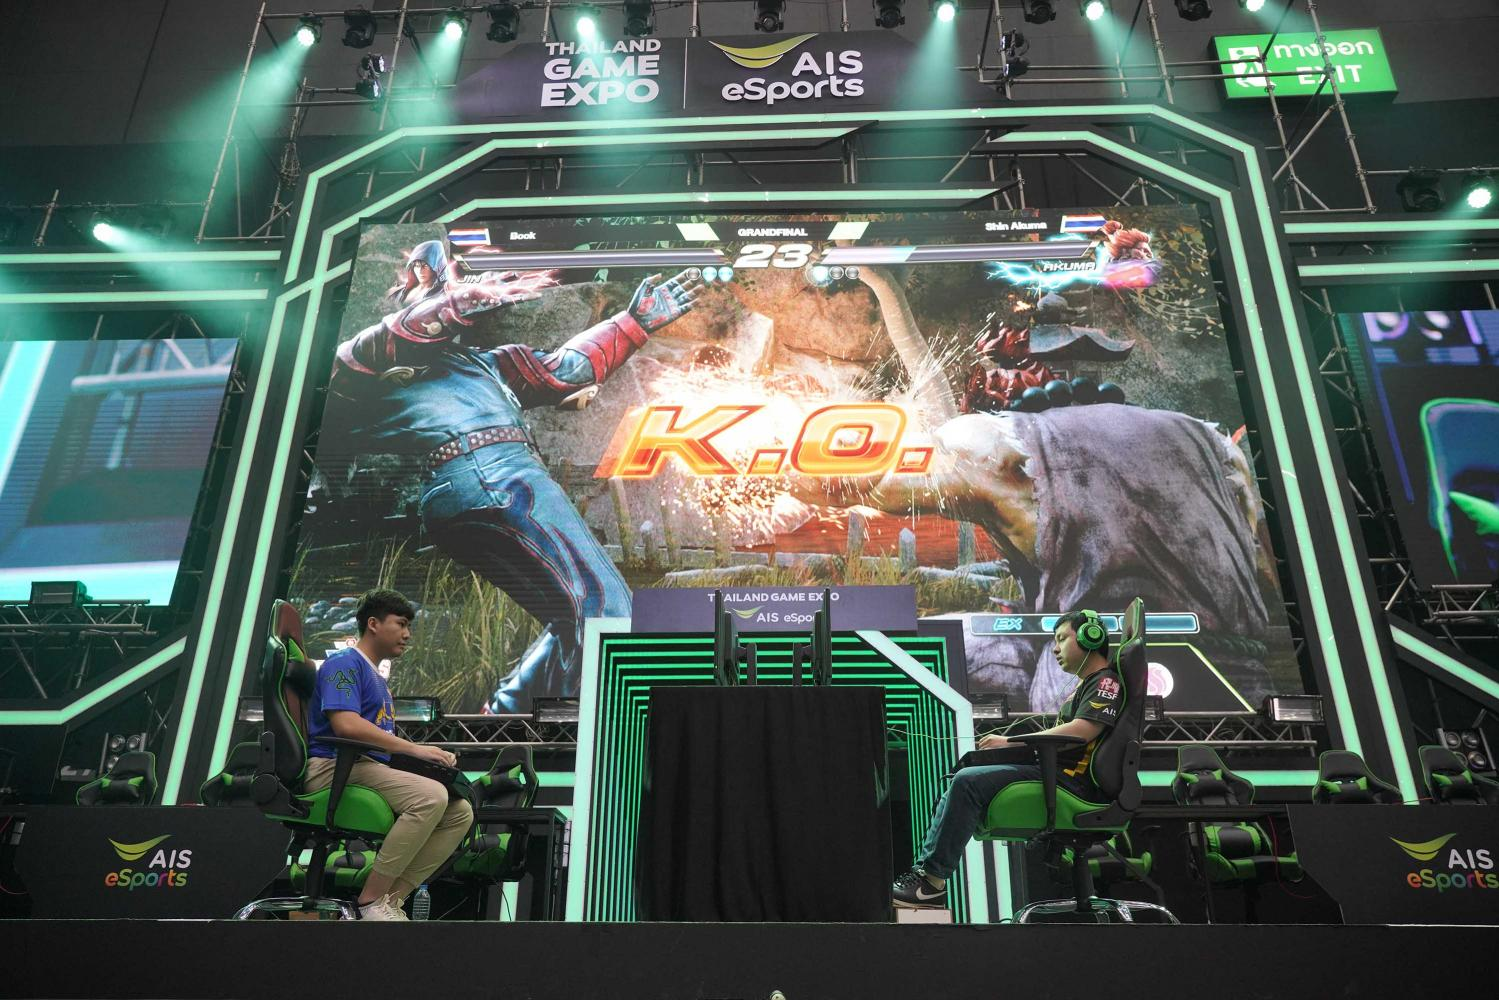 League players compete at Thailand Game Expo 2019, hosted by AIS eSports.